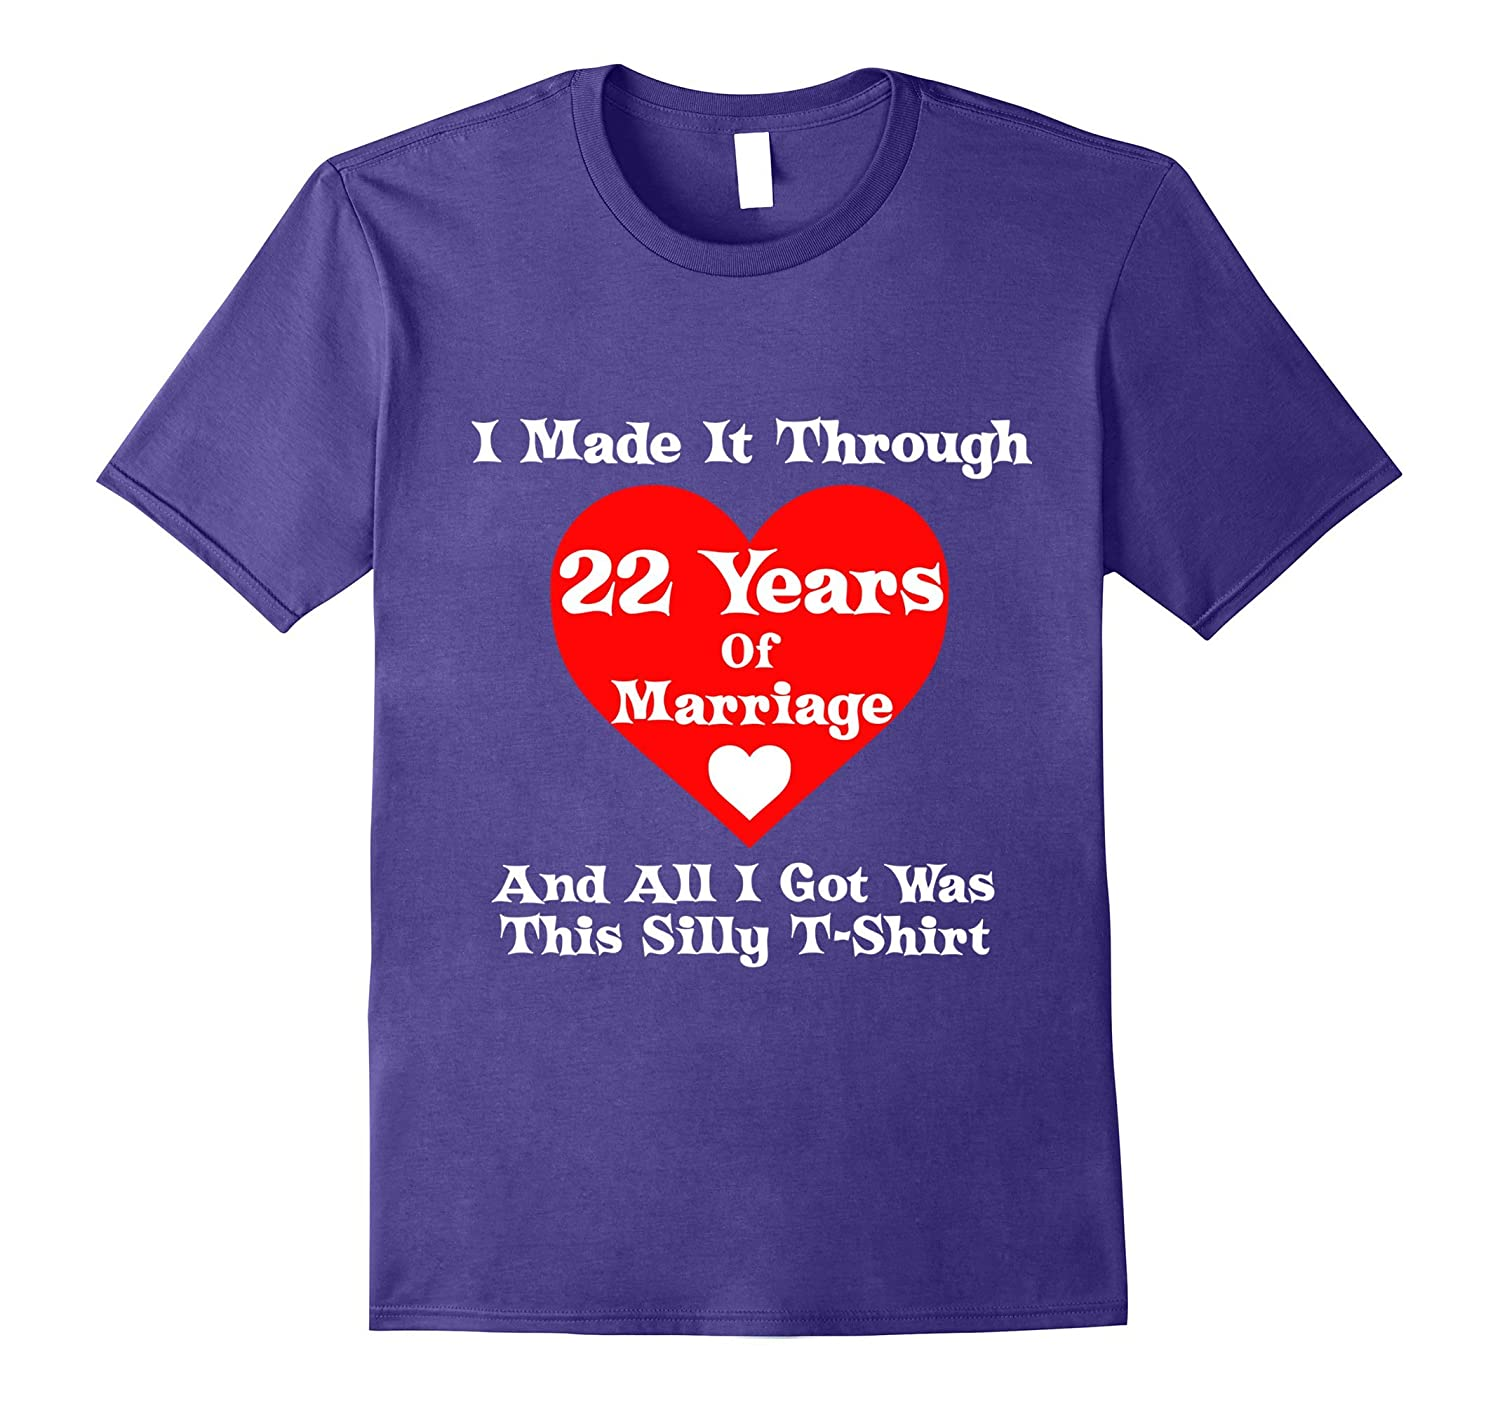 22nd Wedding Anniversary Gift Marriage T-Shirt for Men Women-4LVS